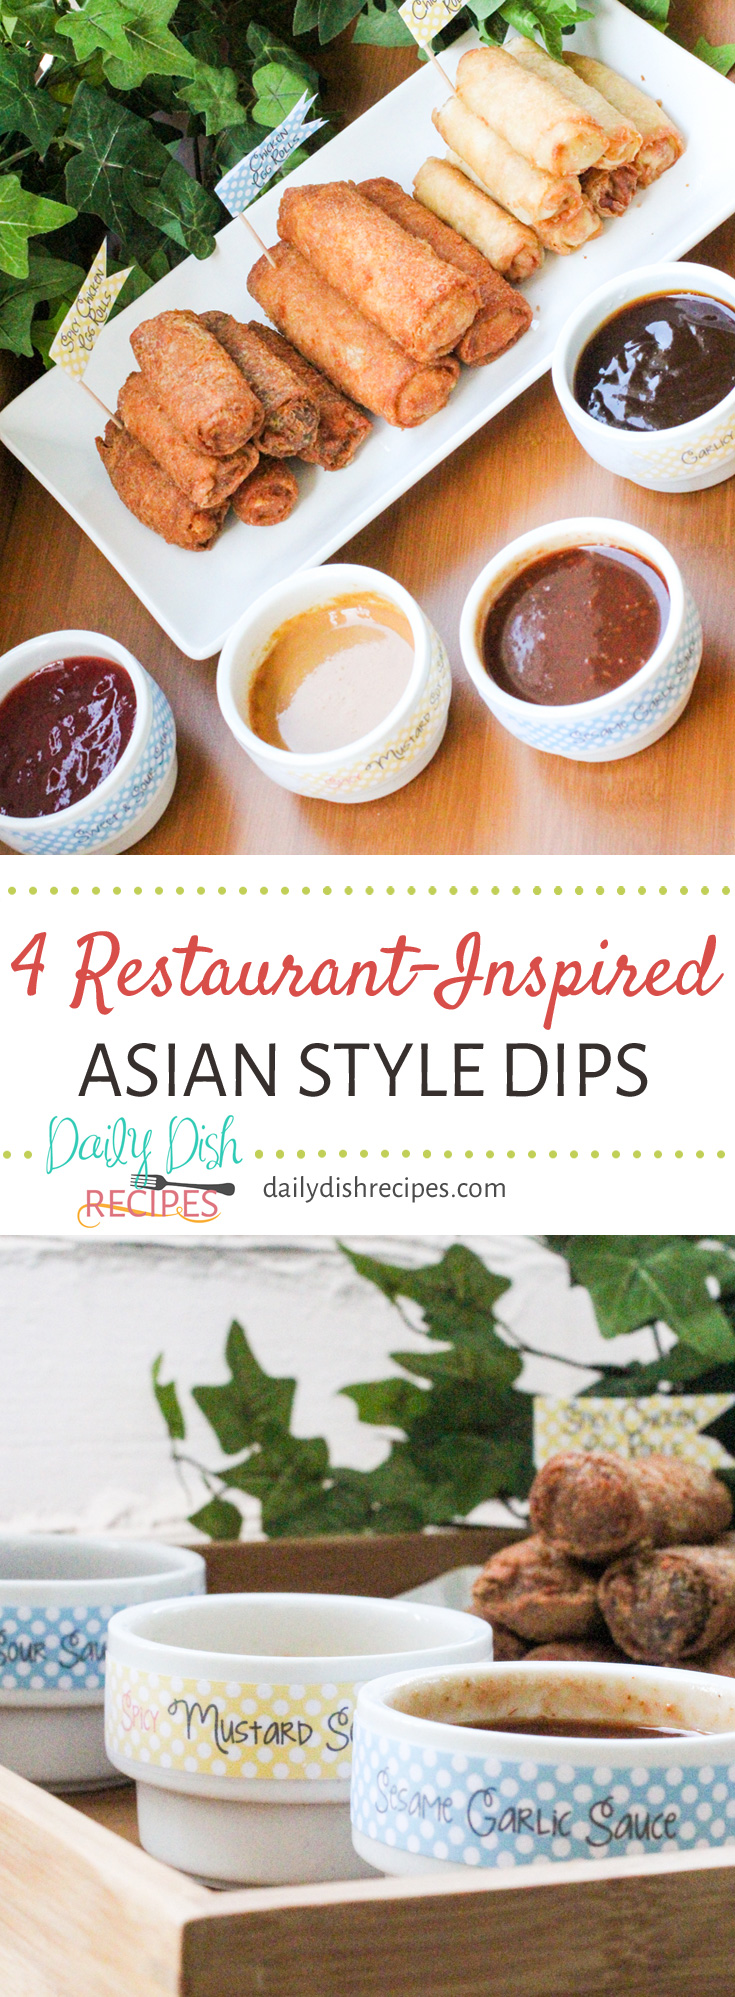 I love to dip. Do you love to dip? These 4 Restaurant-Inspired Asian Style Dipping Sauces make dipping fun and there's a dipping sauce for every palate. Which one will you choose?